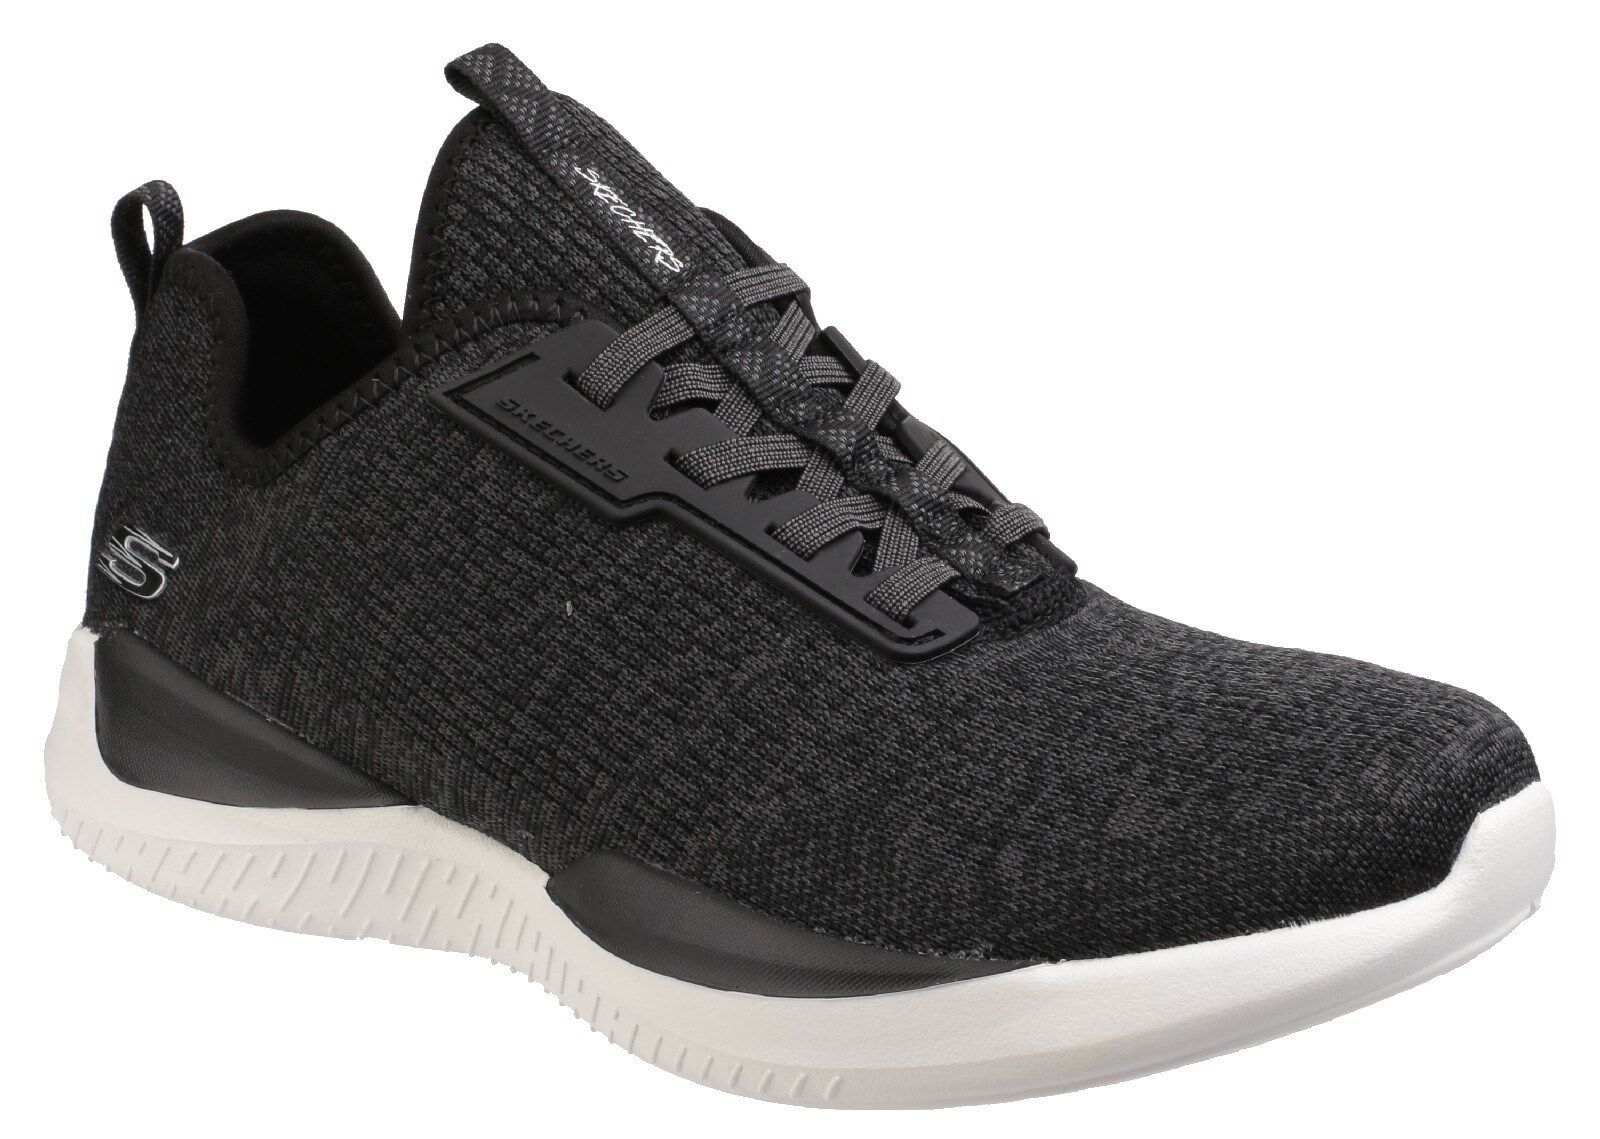 Skechers Matrixx Trainers Memory Foam Knit Sports Womens shoes Sneakers